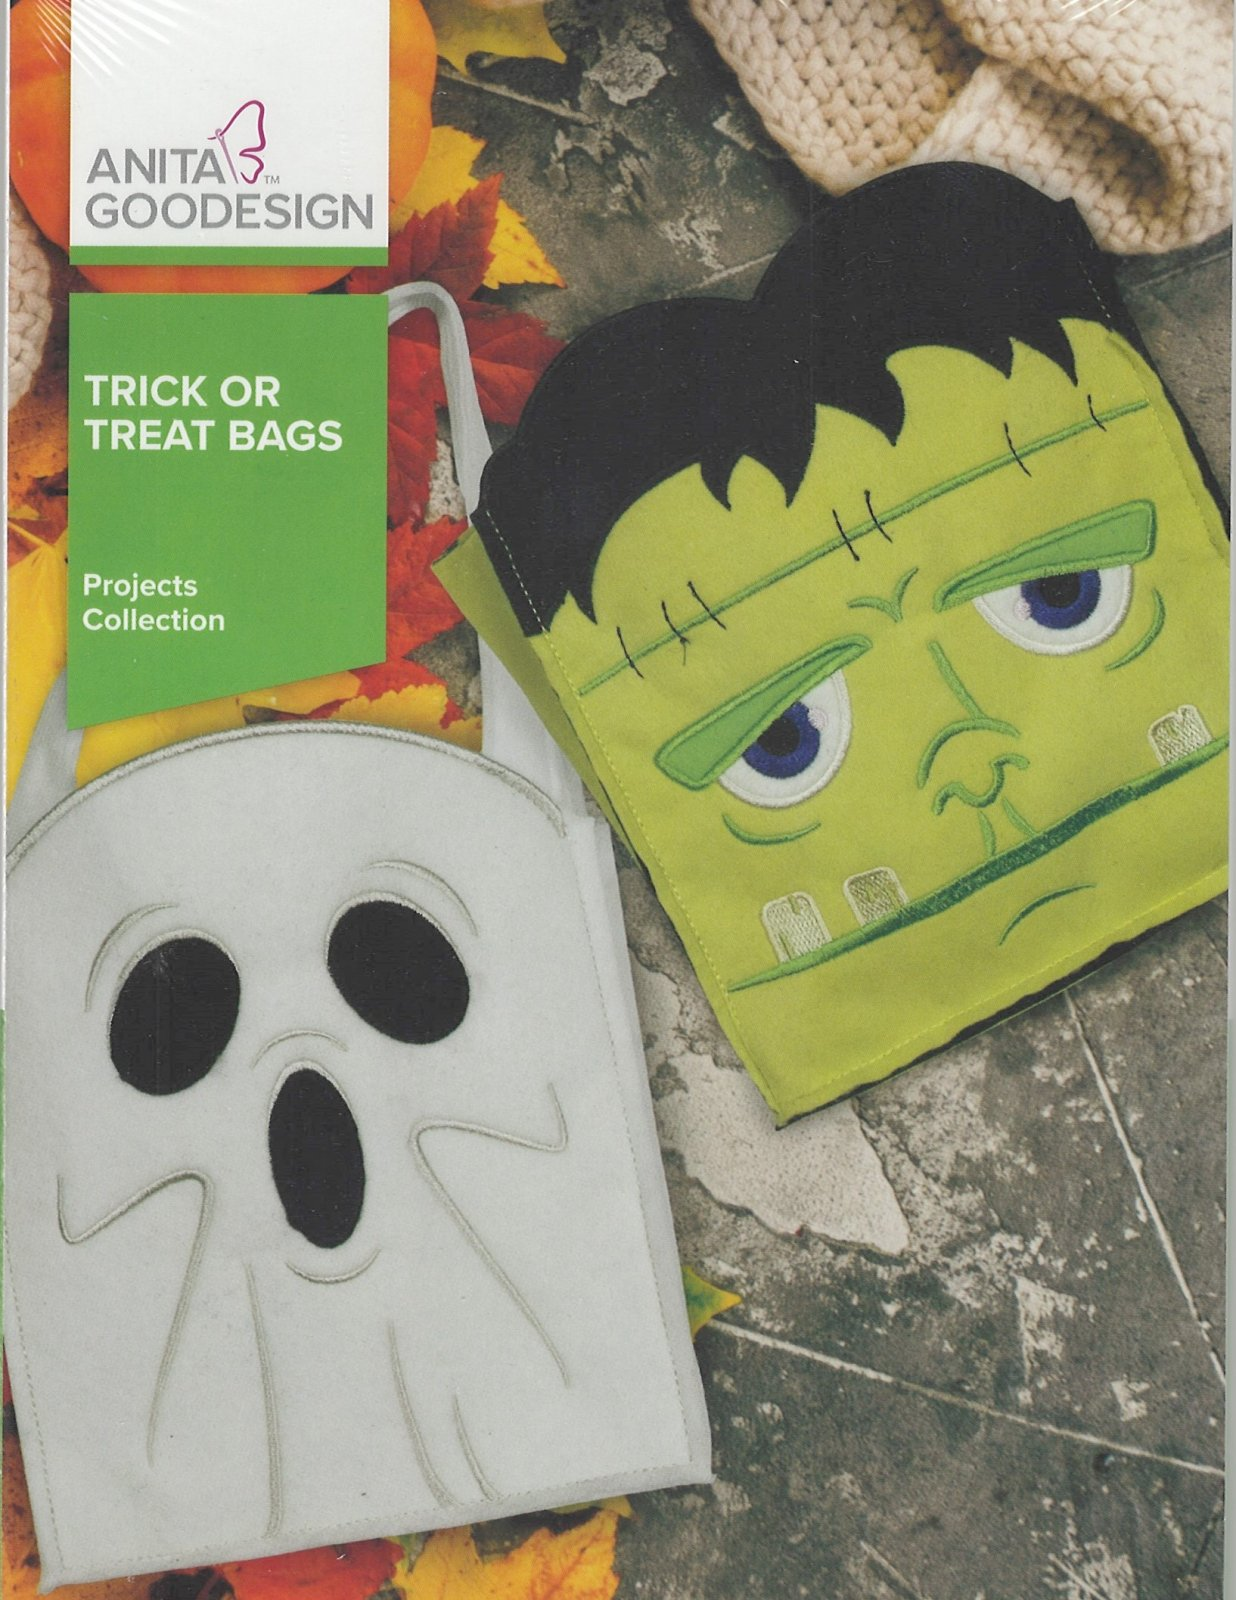 Anita Goodesign Machine Embroidery Designs Trick Or Treat Bags Full Collection CD